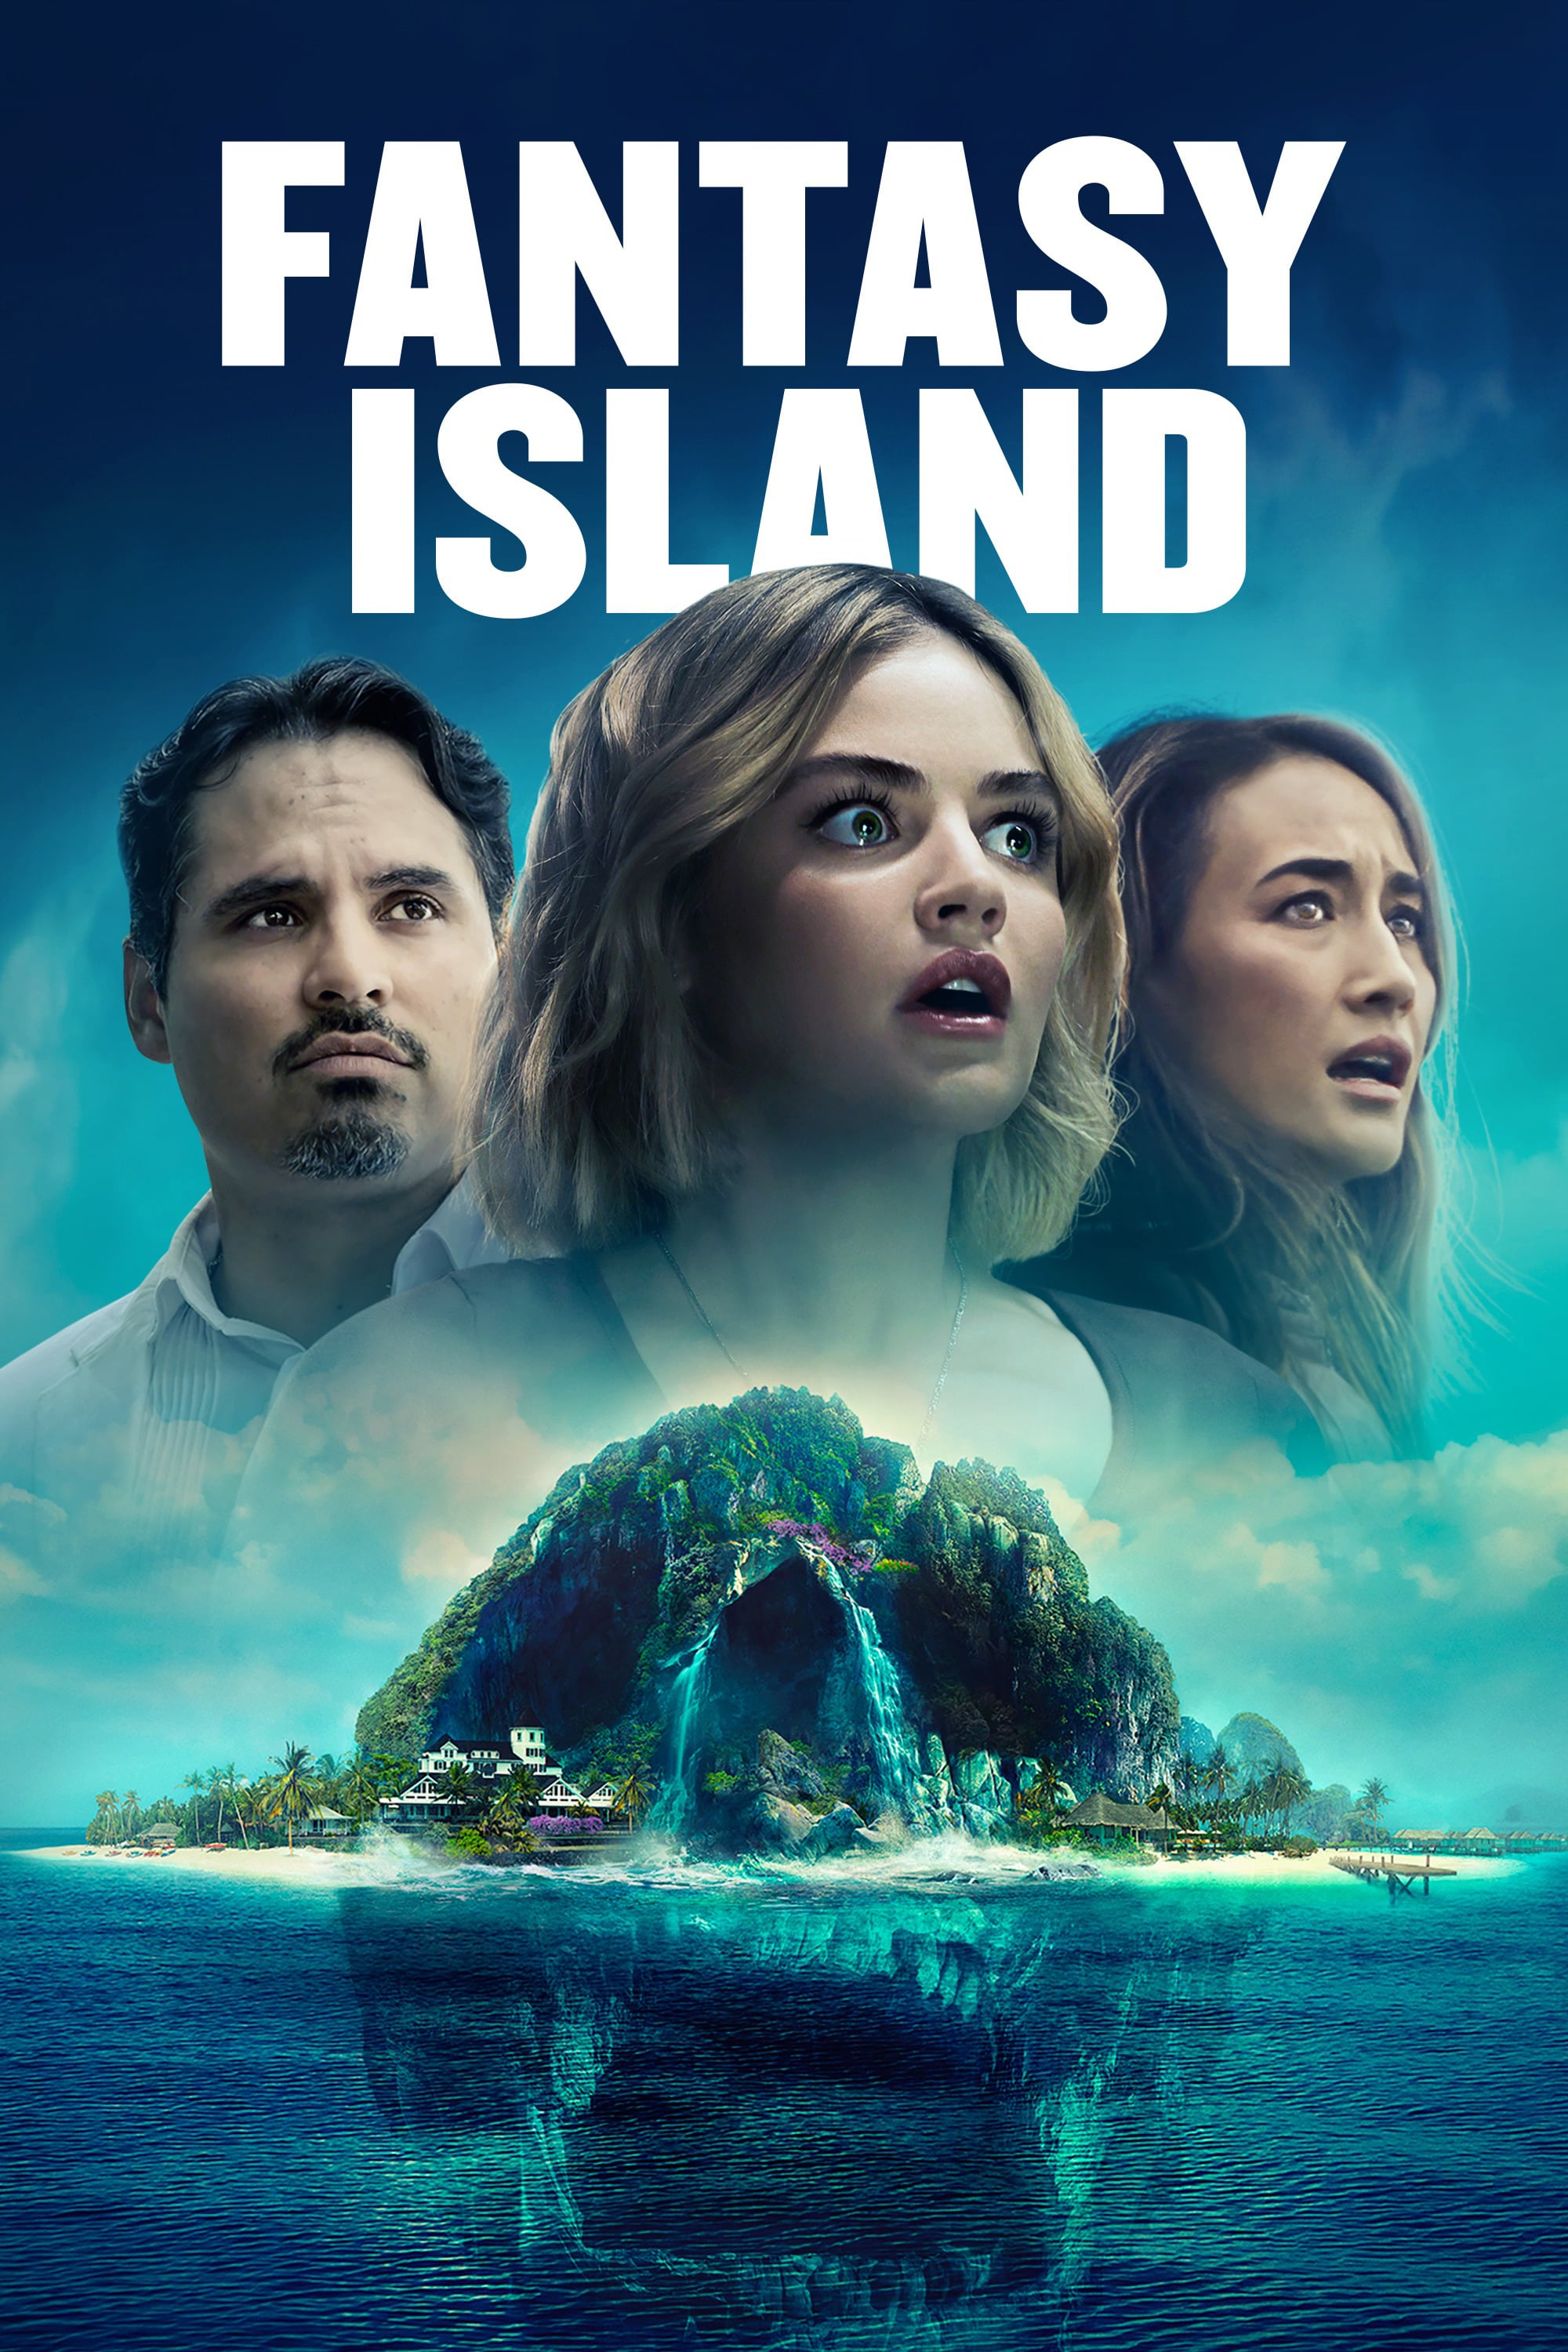 Fantasy Island Movie Poster - ID: 351483 - Image Abyss